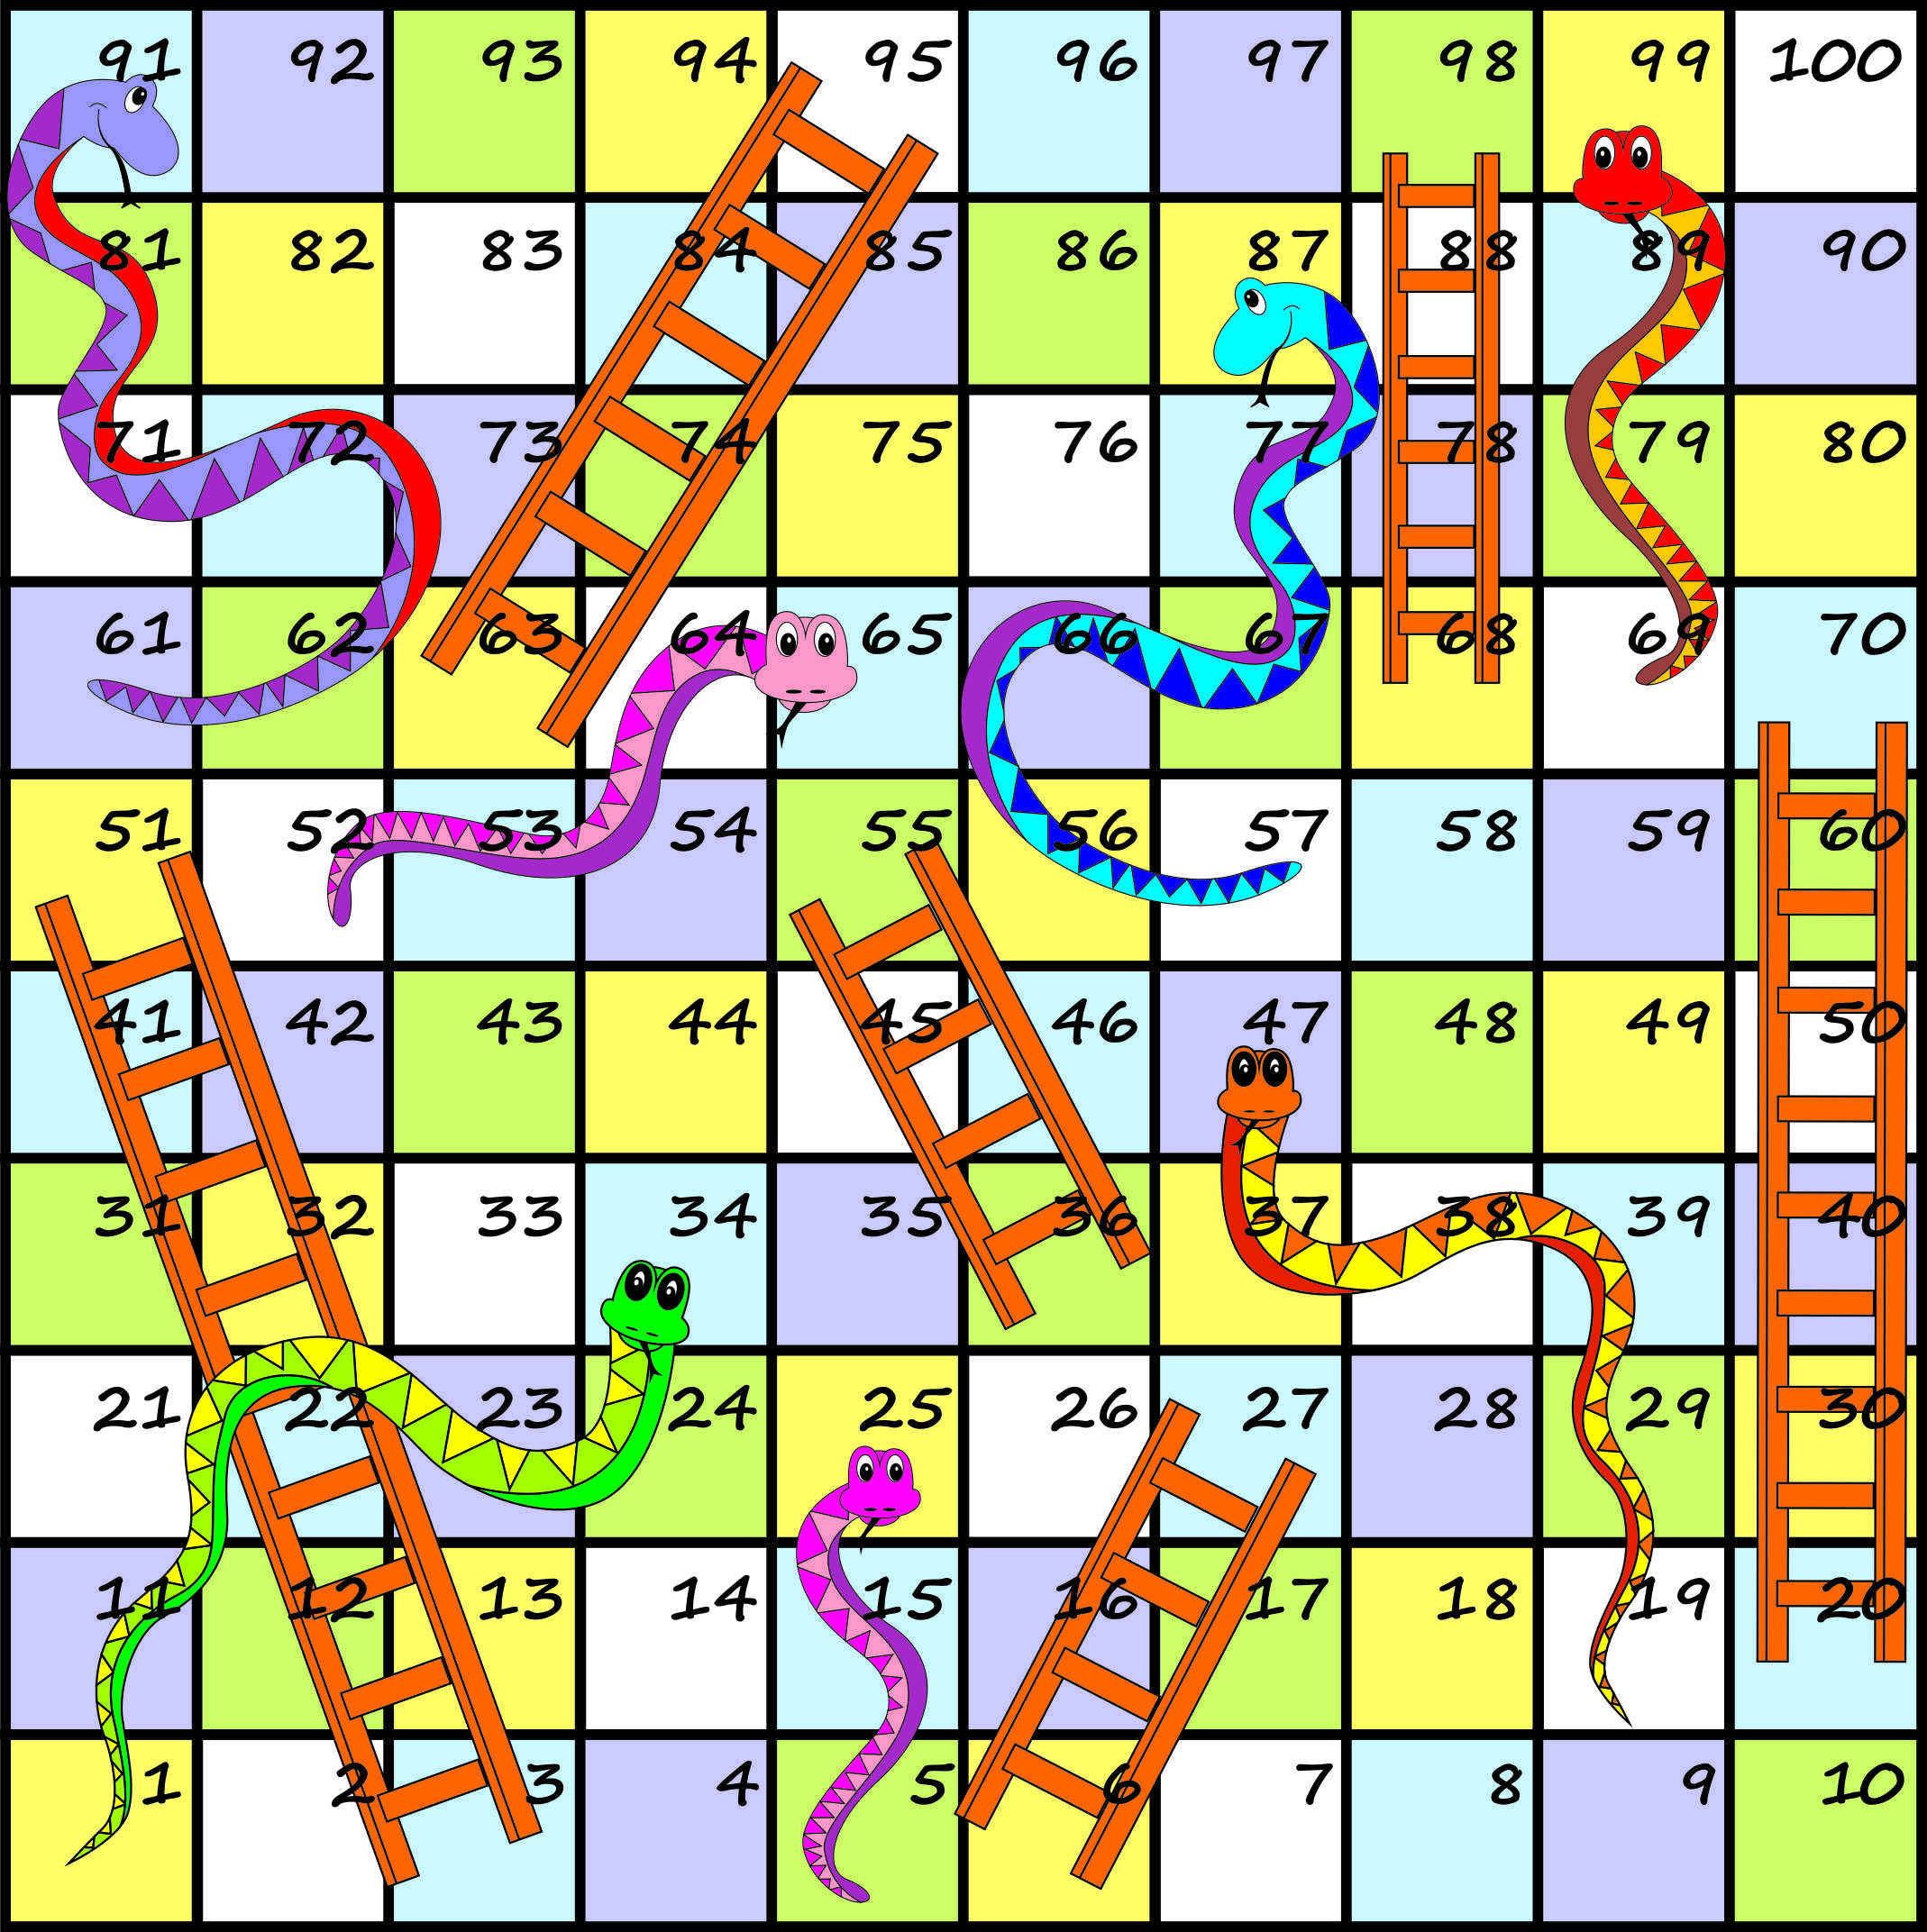 picture regarding Snakes and Ladders Printable titled Images Images - Snakes And Ladders Board Printable